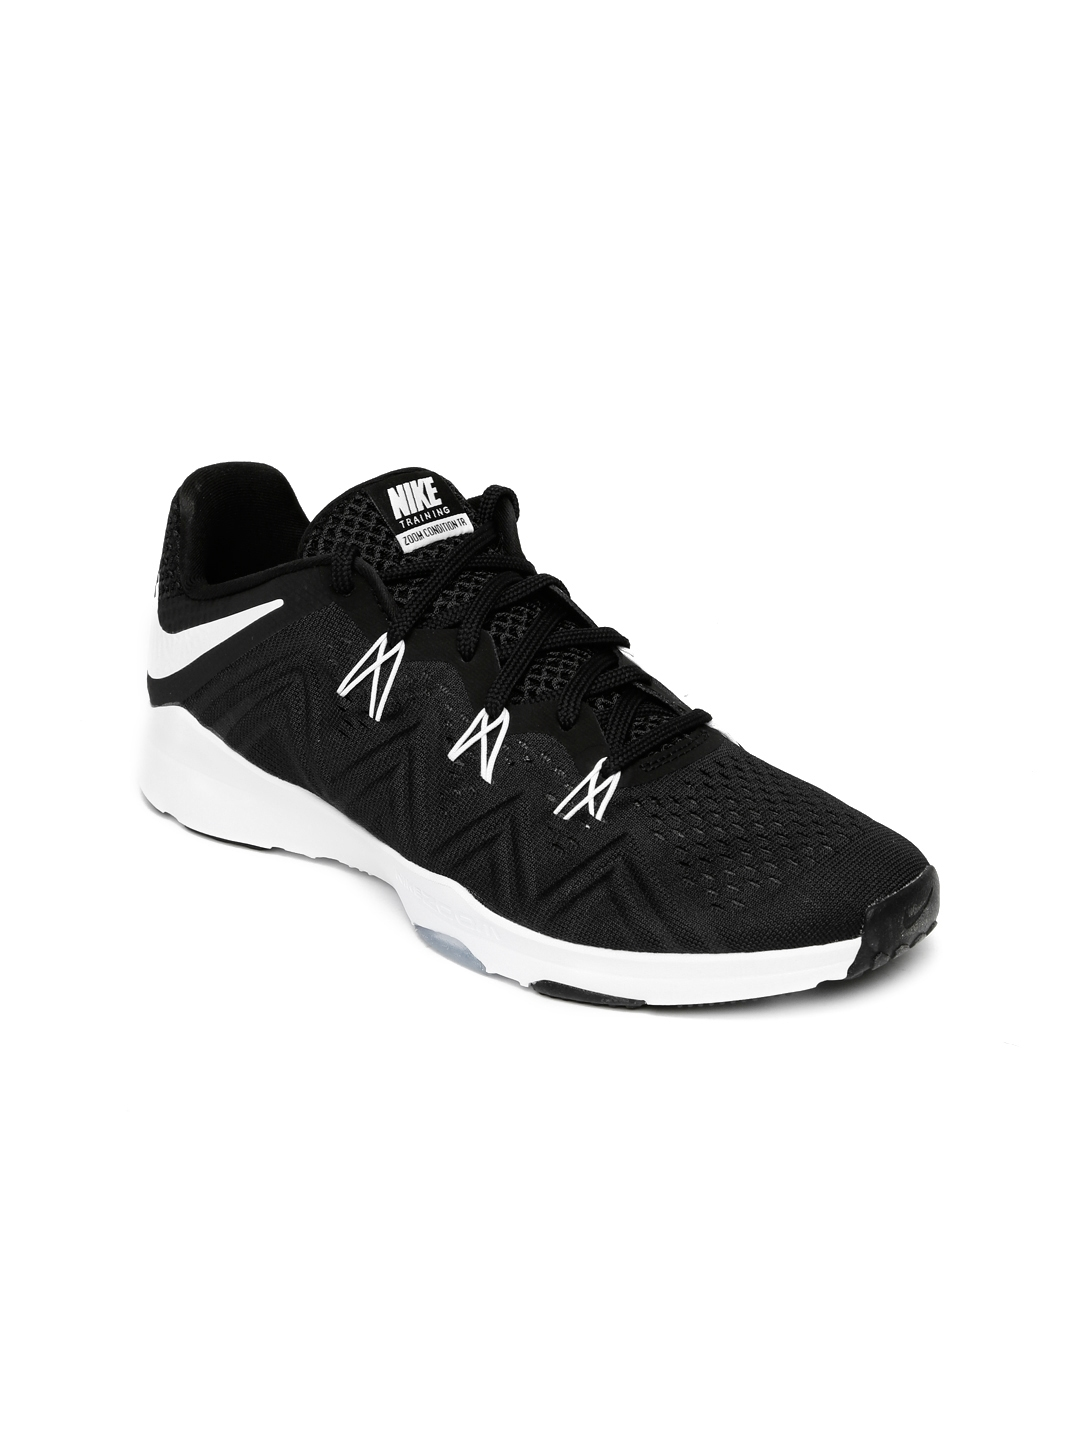 01e8388b1fc95 Buy Nike Women Black ZOOM CONDITION TR Training Shoes - Sports Shoes ...